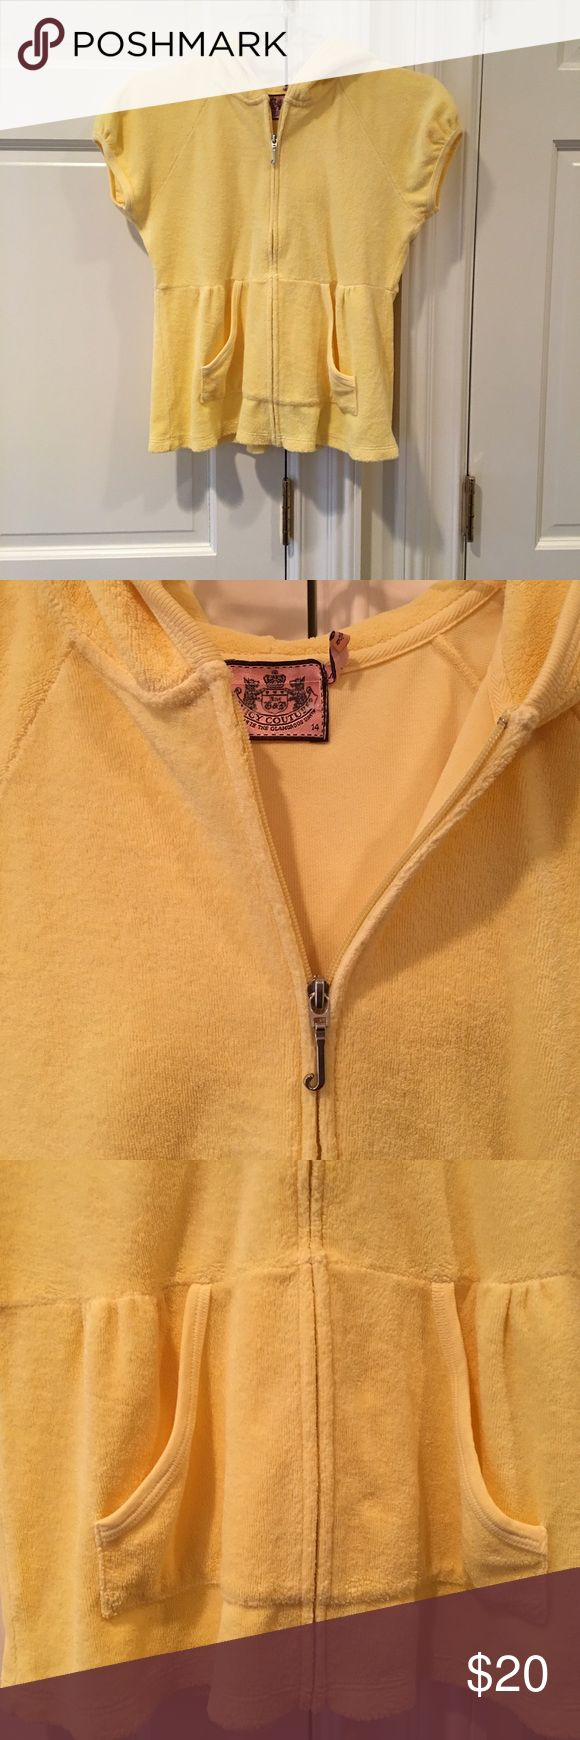 Kid's Juicy Couture Terry Short Sleeve Hoodie Kid's Juicy Couture Terry Short Sleeve Hoodie Size 14 Bright Yellow Slightly Puffed Sleeve and Front Pockets Good Condition Juicy Couture Shirts & Tops Sweatshirts & Hoodies